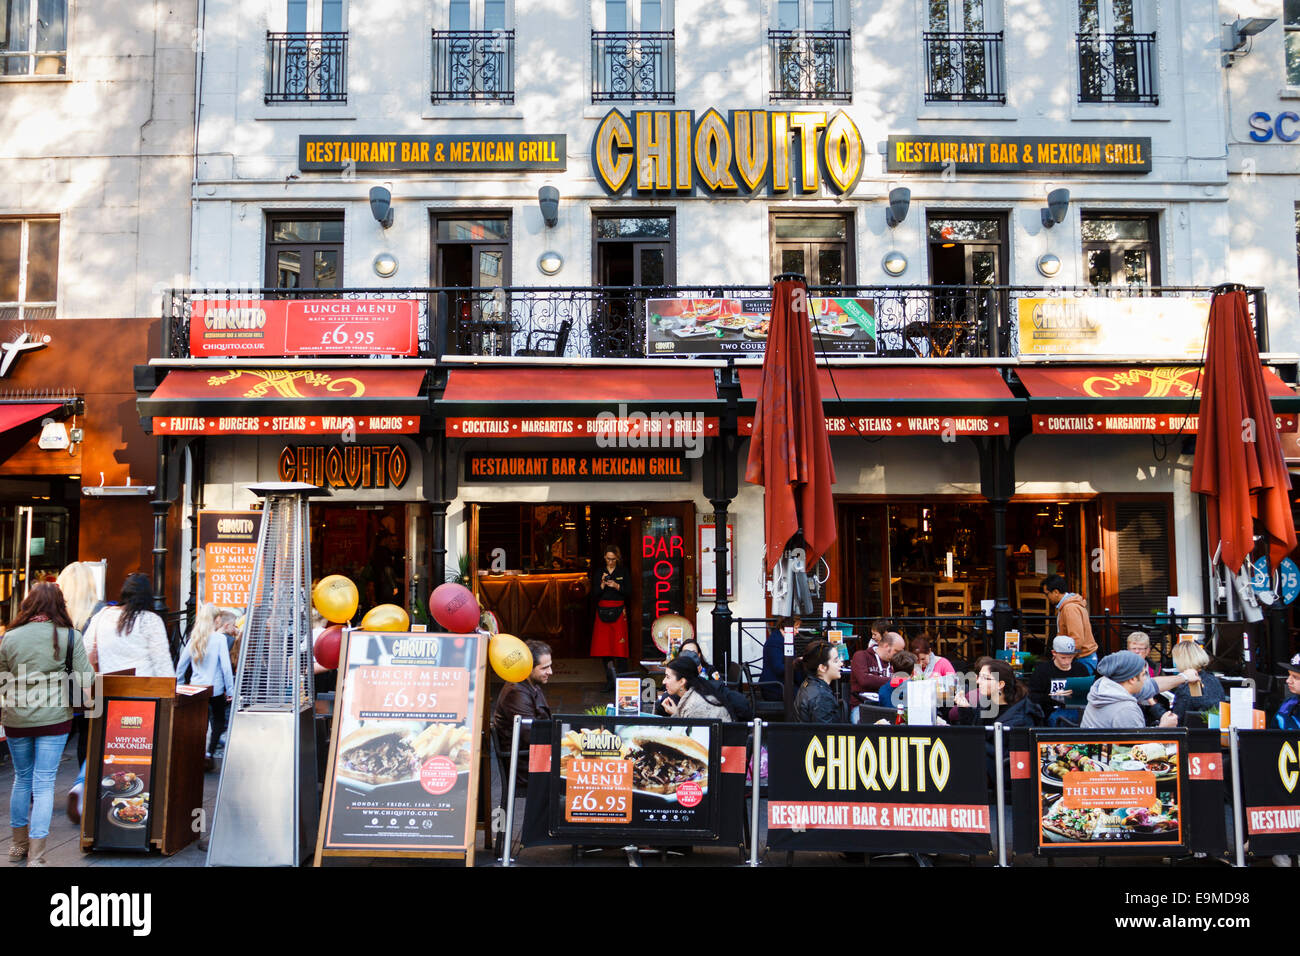 Chiquito mexican restaurant in Leicester Square, London, England, UK - Stock Image